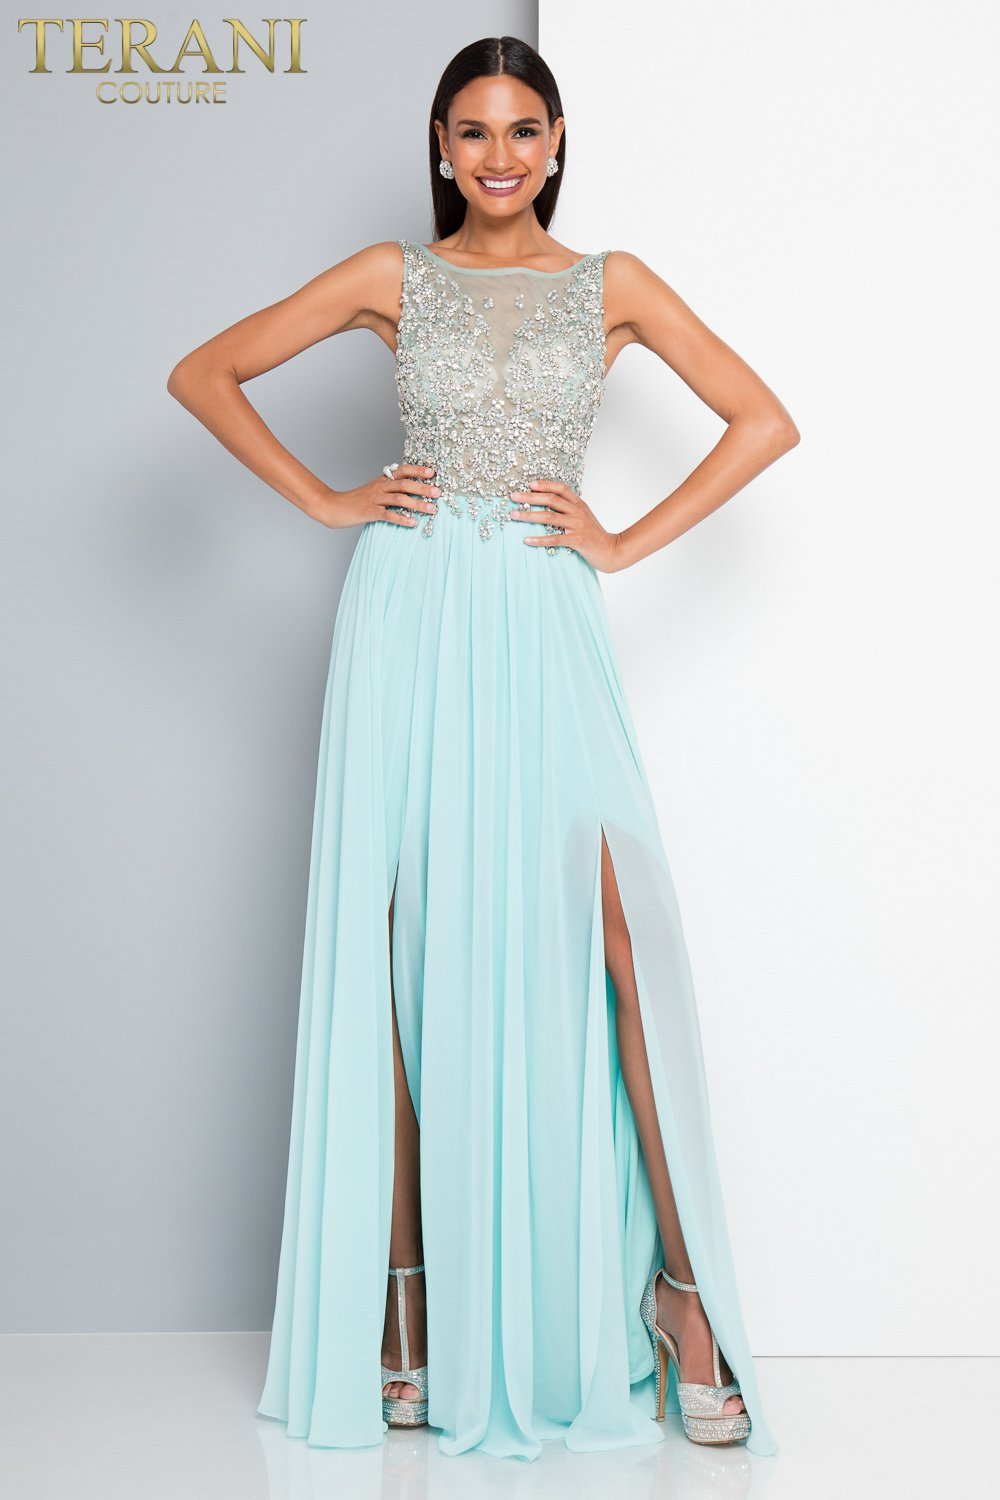 Crystal Encrusted Illusion Neckline Prom Dress - 1811P5204